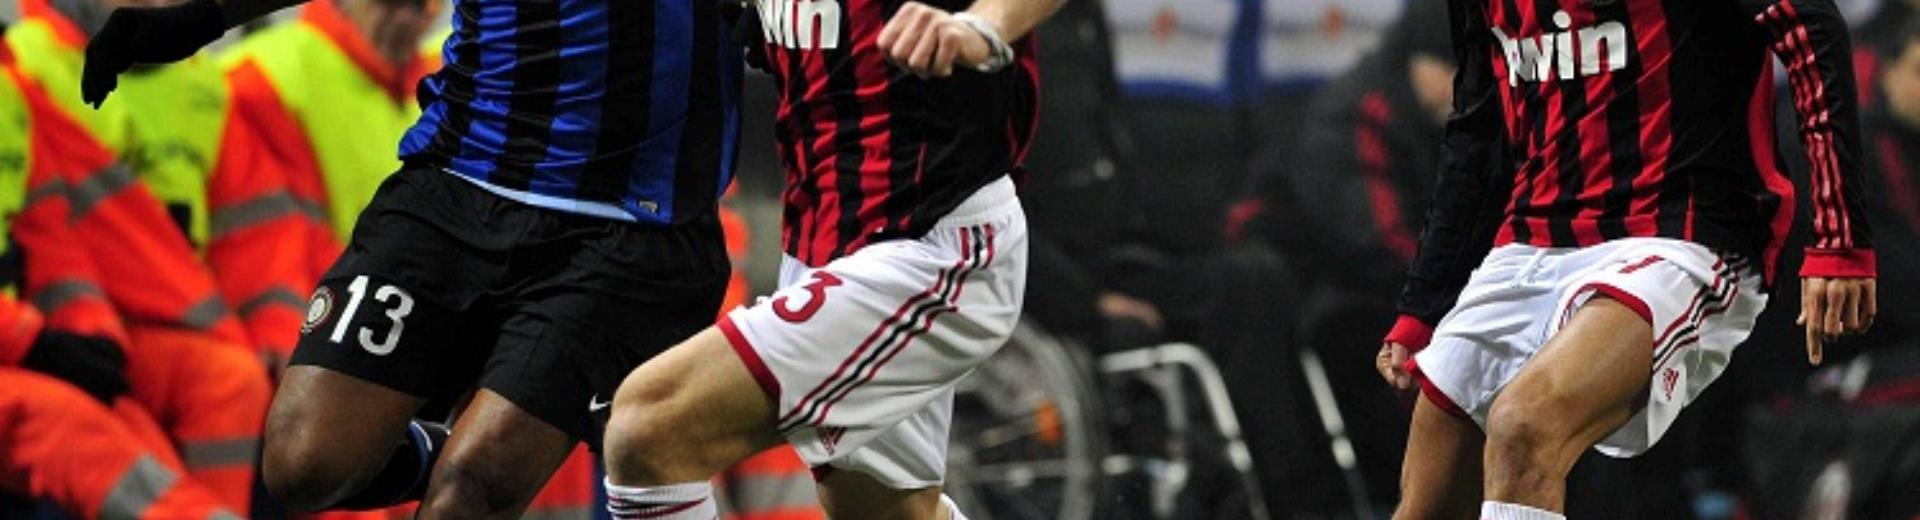 San Siro is just minutes from the Hotel Astoria, don't miss the Derby della Madonnina!